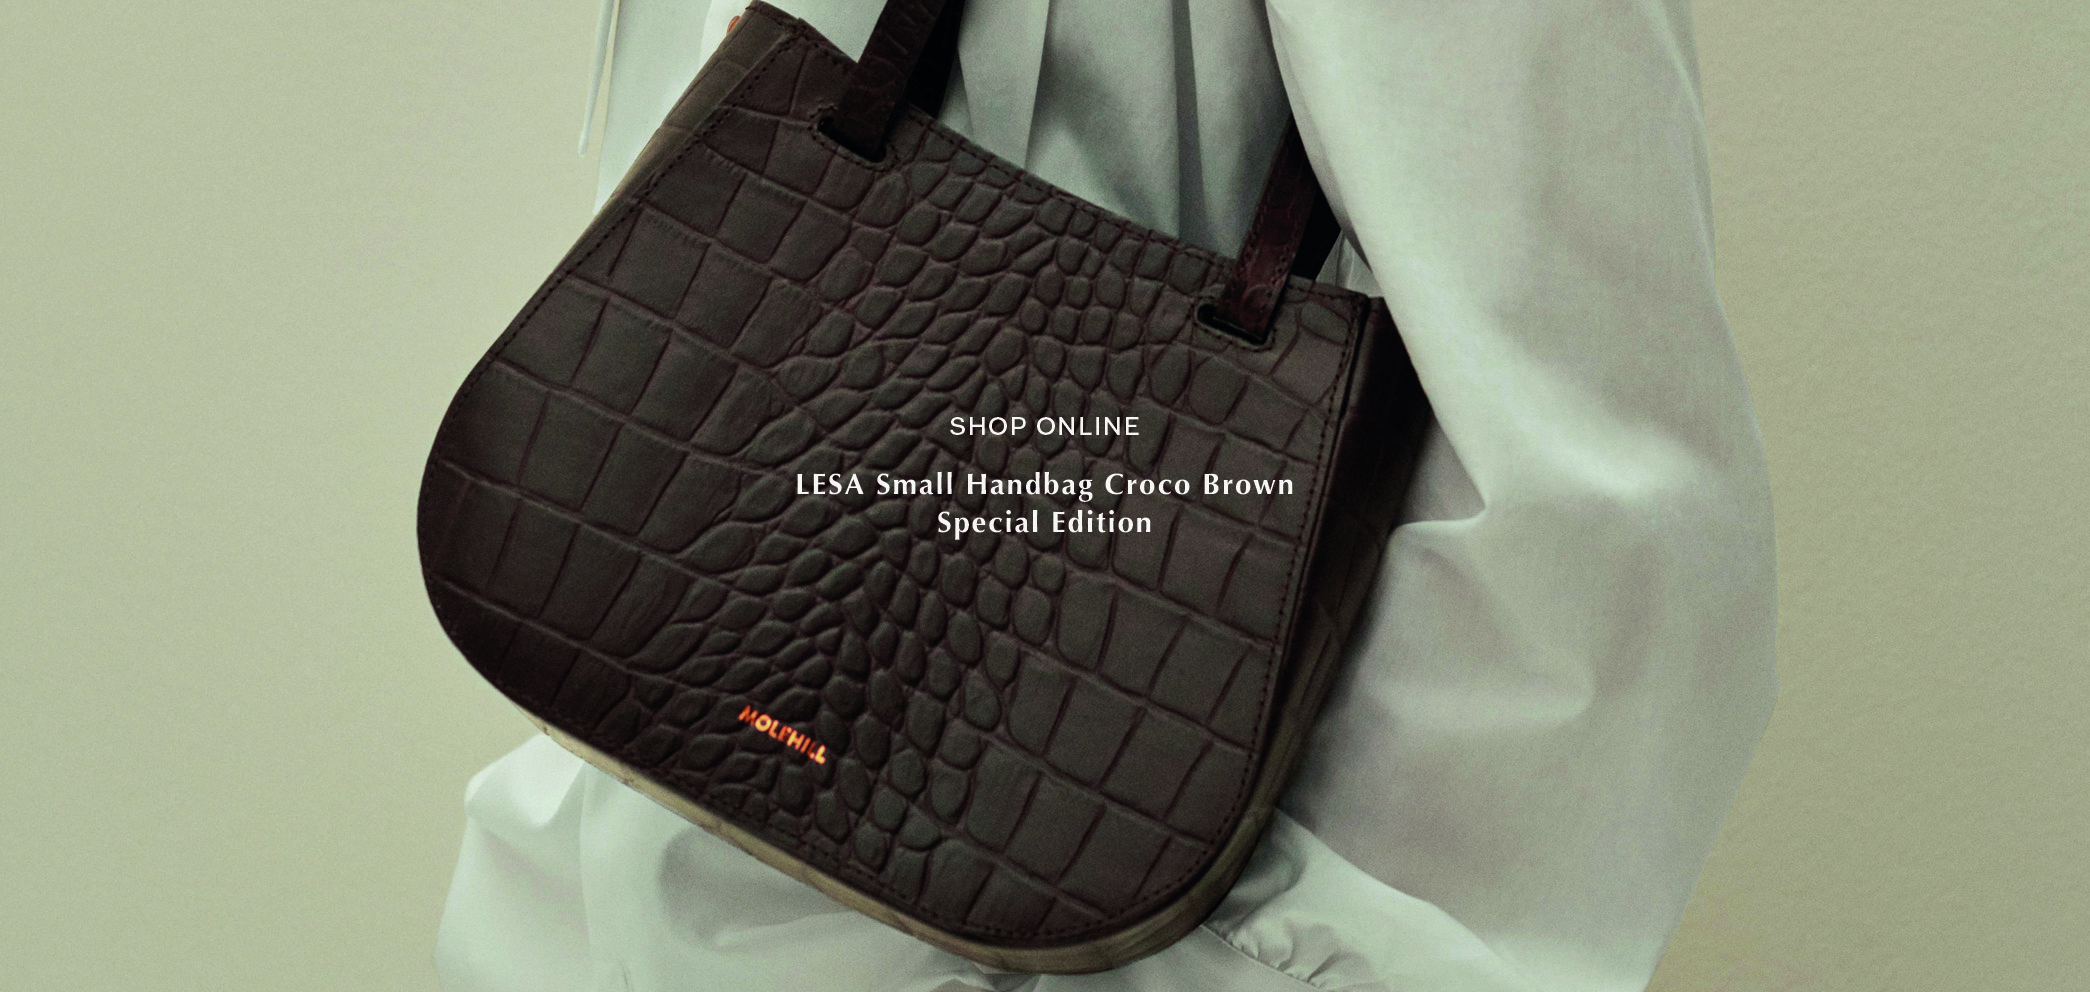 Molehill-Lesa-Small-Handbag-Croco-Brown-Special-Edition